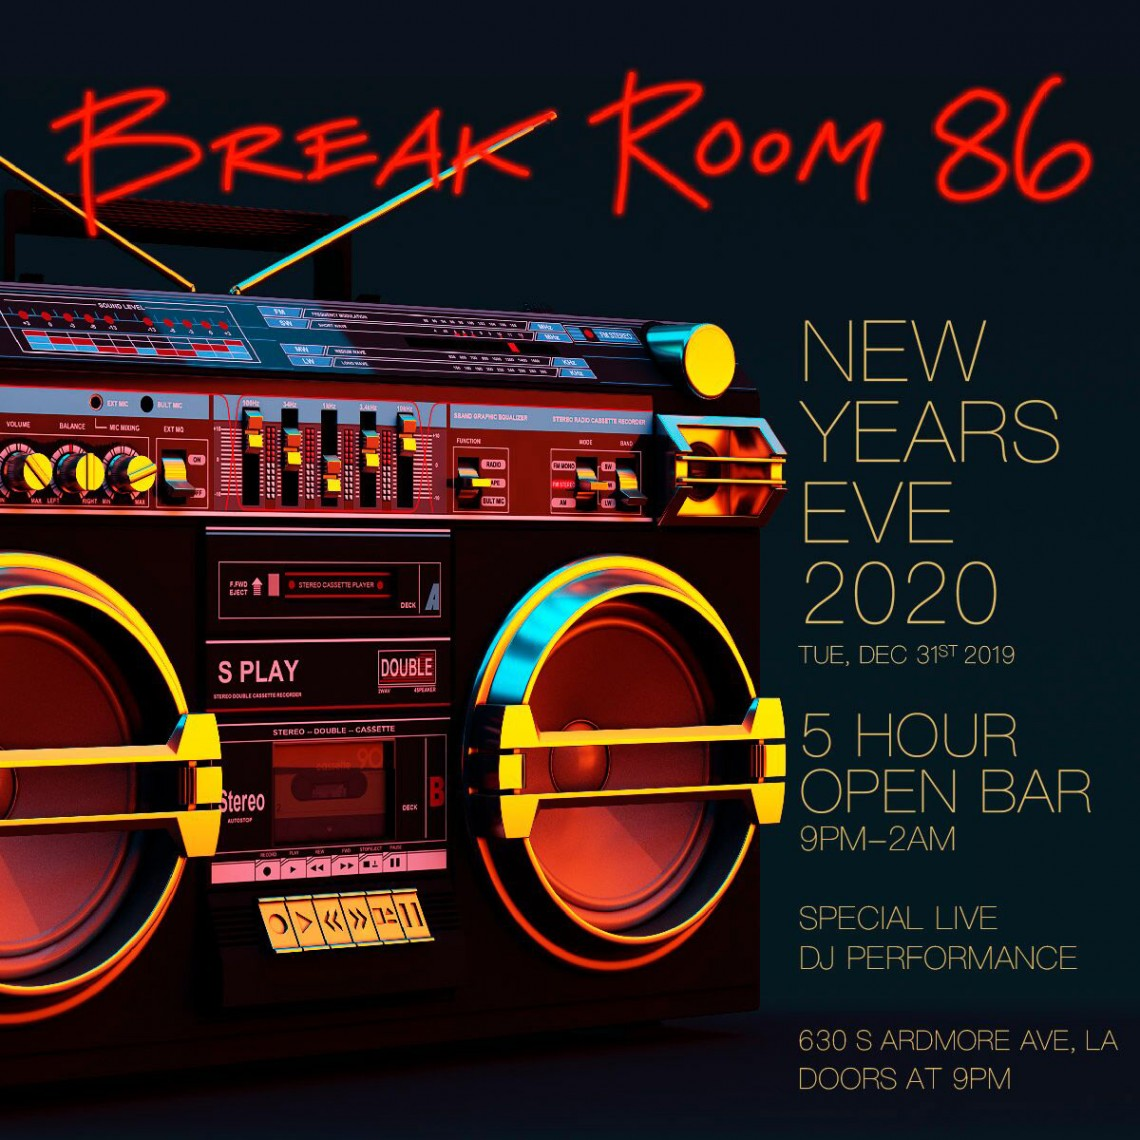 NYE | Break Room 86 New Years Open Bar Tickets